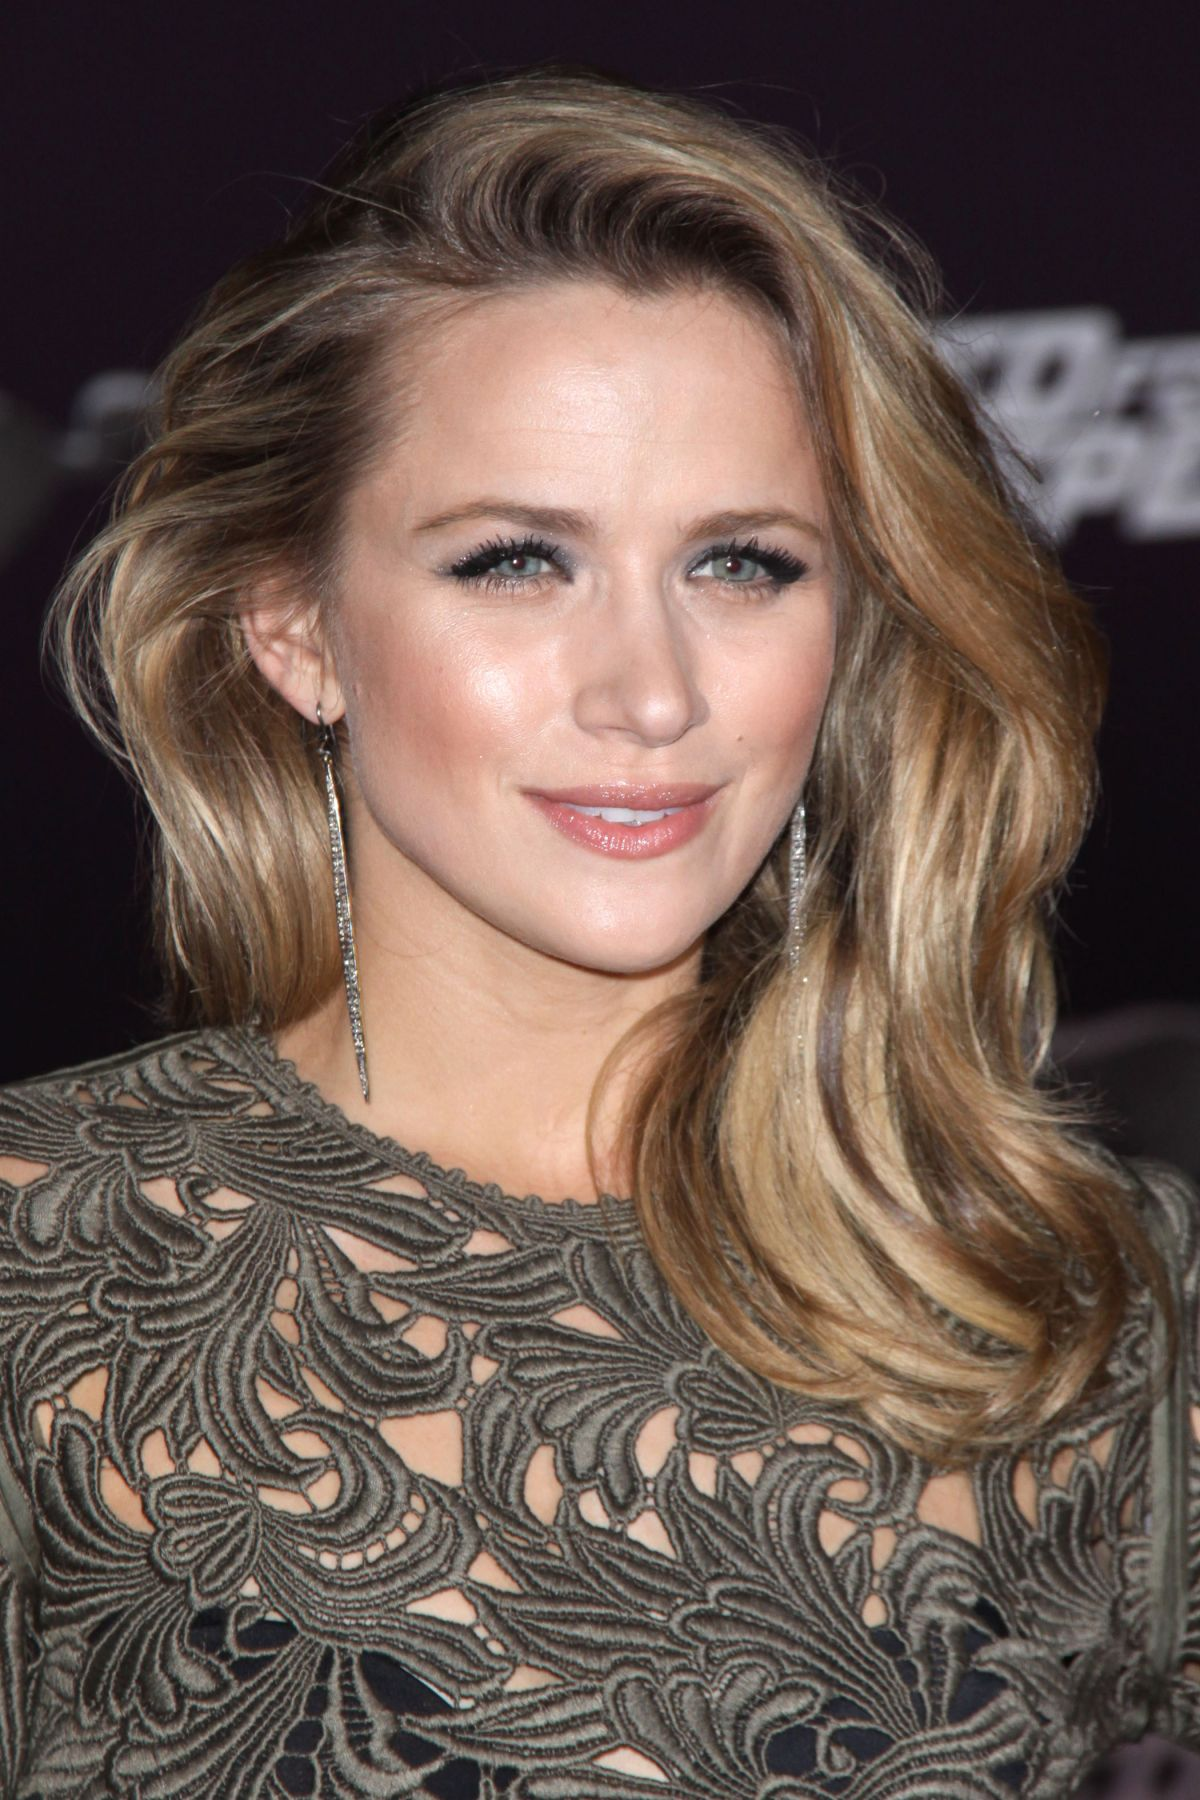 Shantel Vansanten Hd Wallpapers Free Download